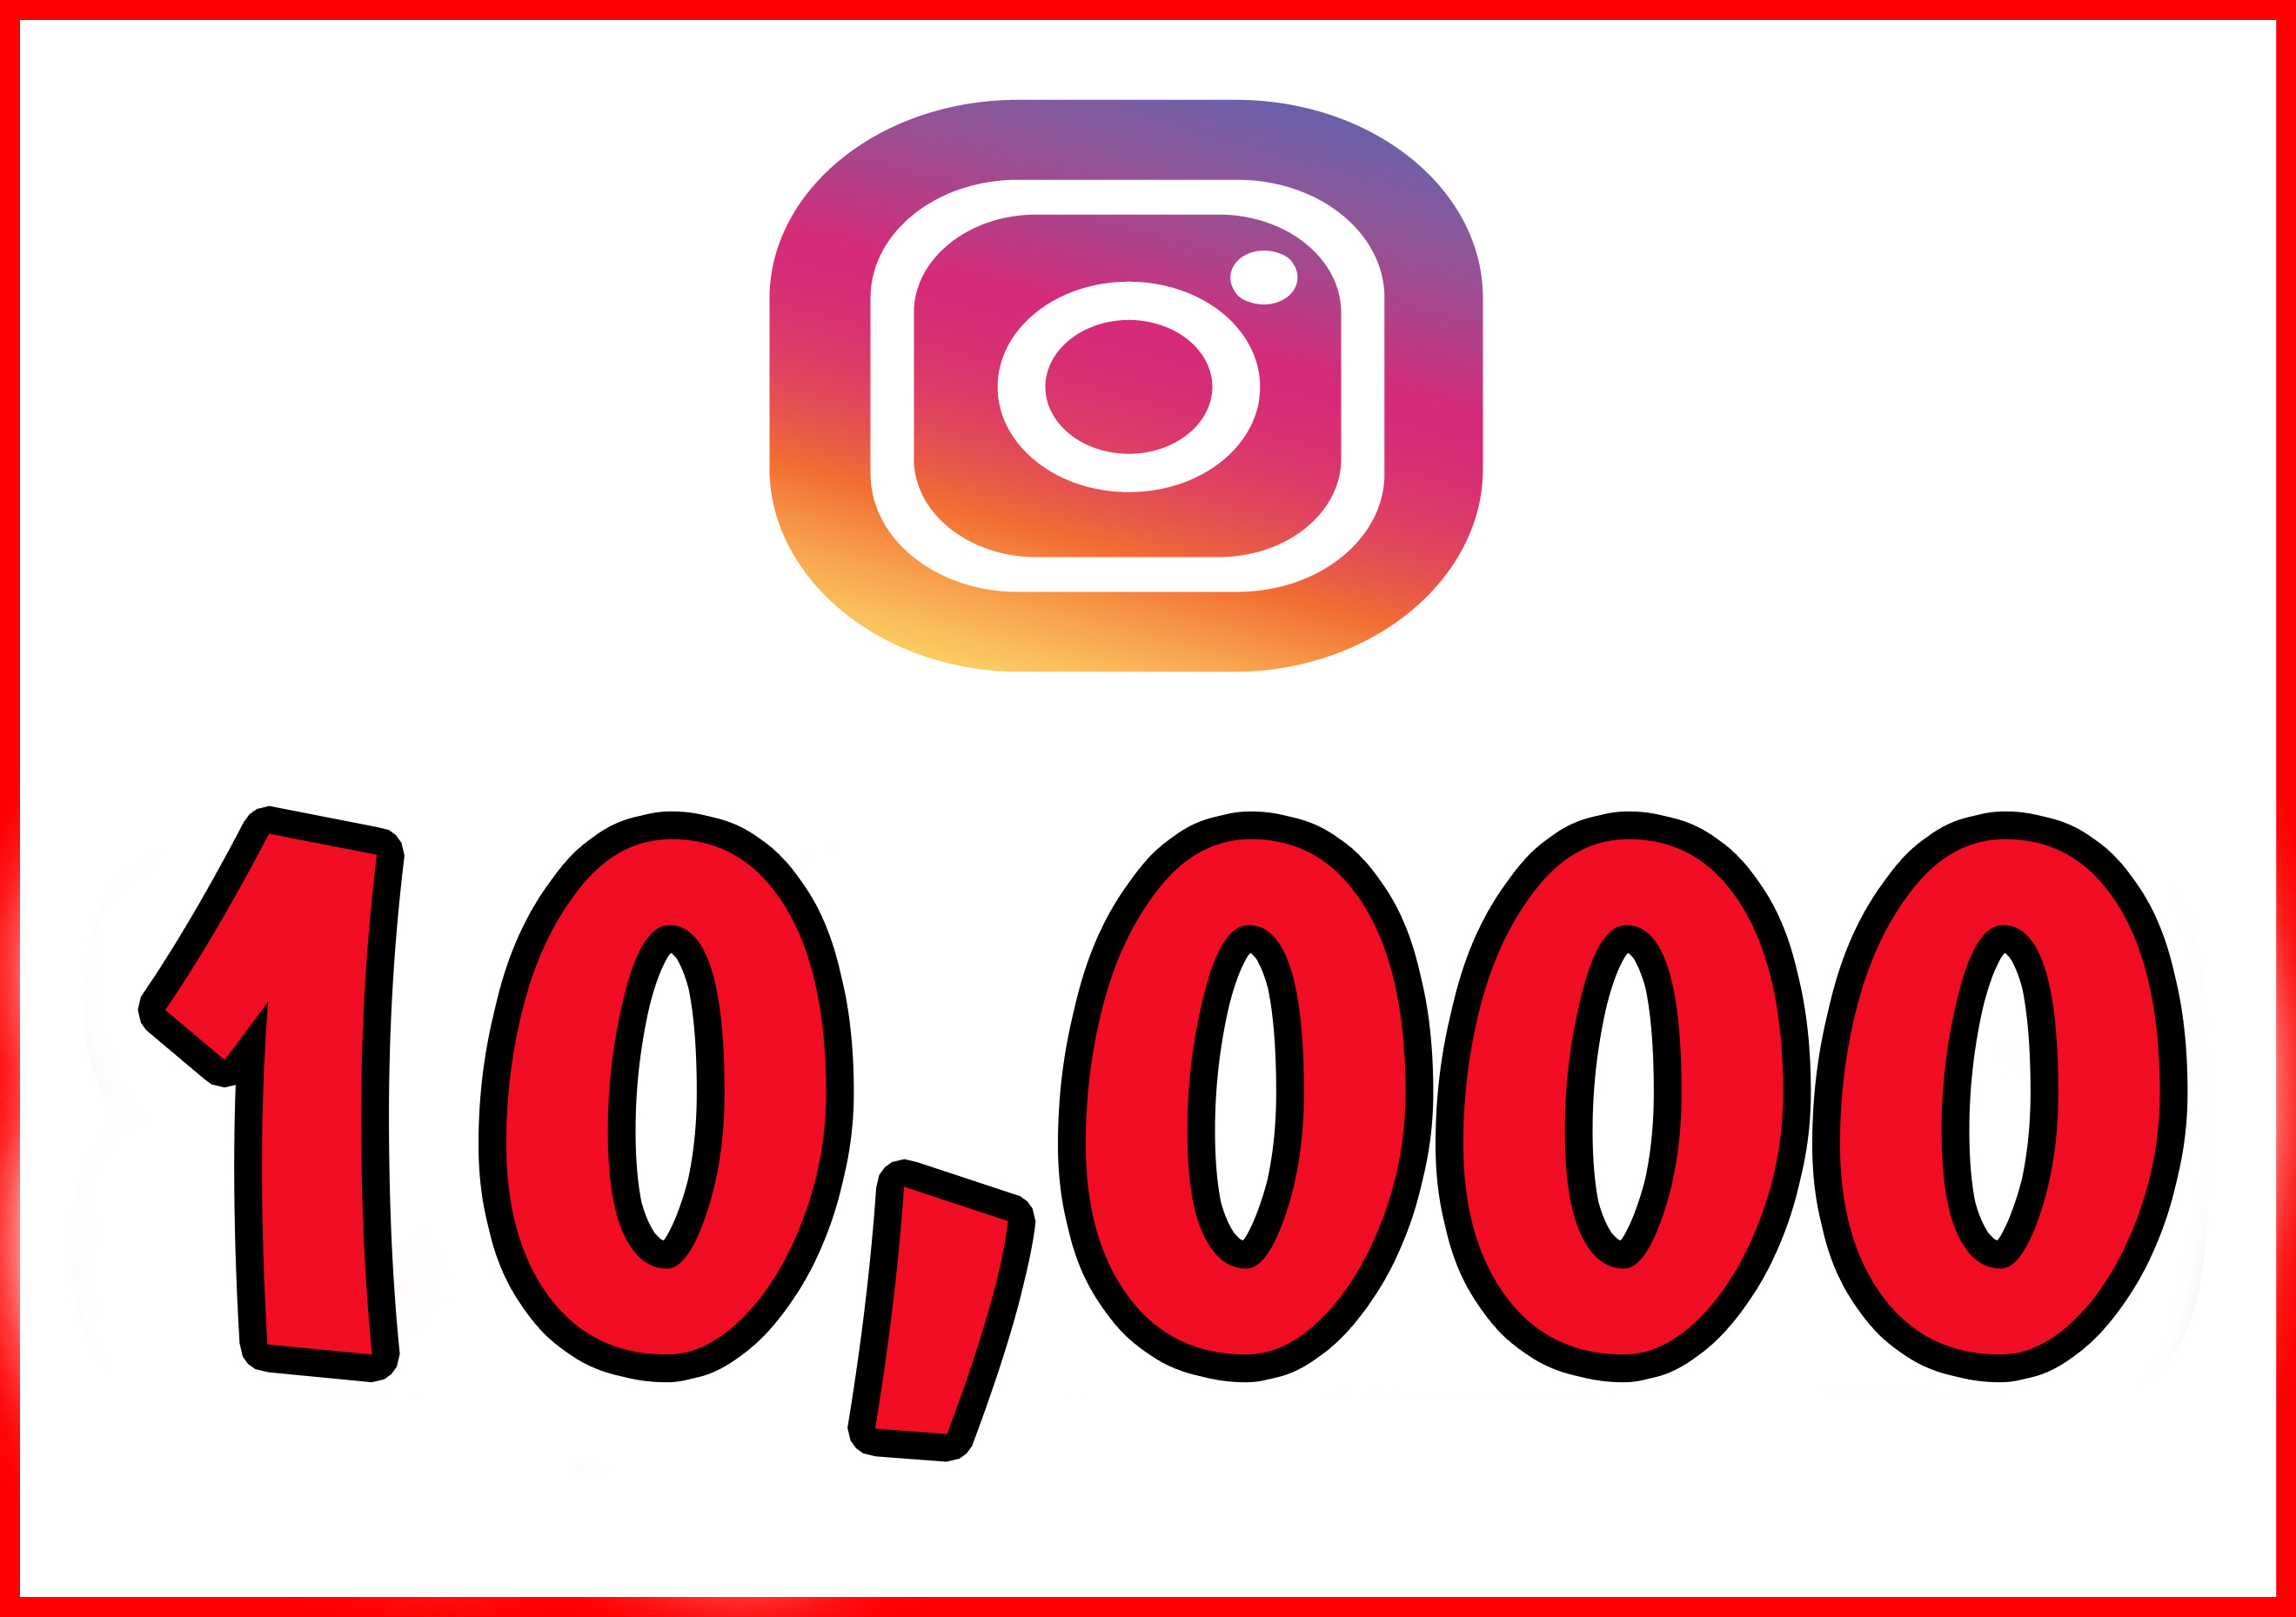 10,000+ Instagram Quality Followers Non Drop in 24 Hours! -Great & Fast HQ Service – 100% SAFE